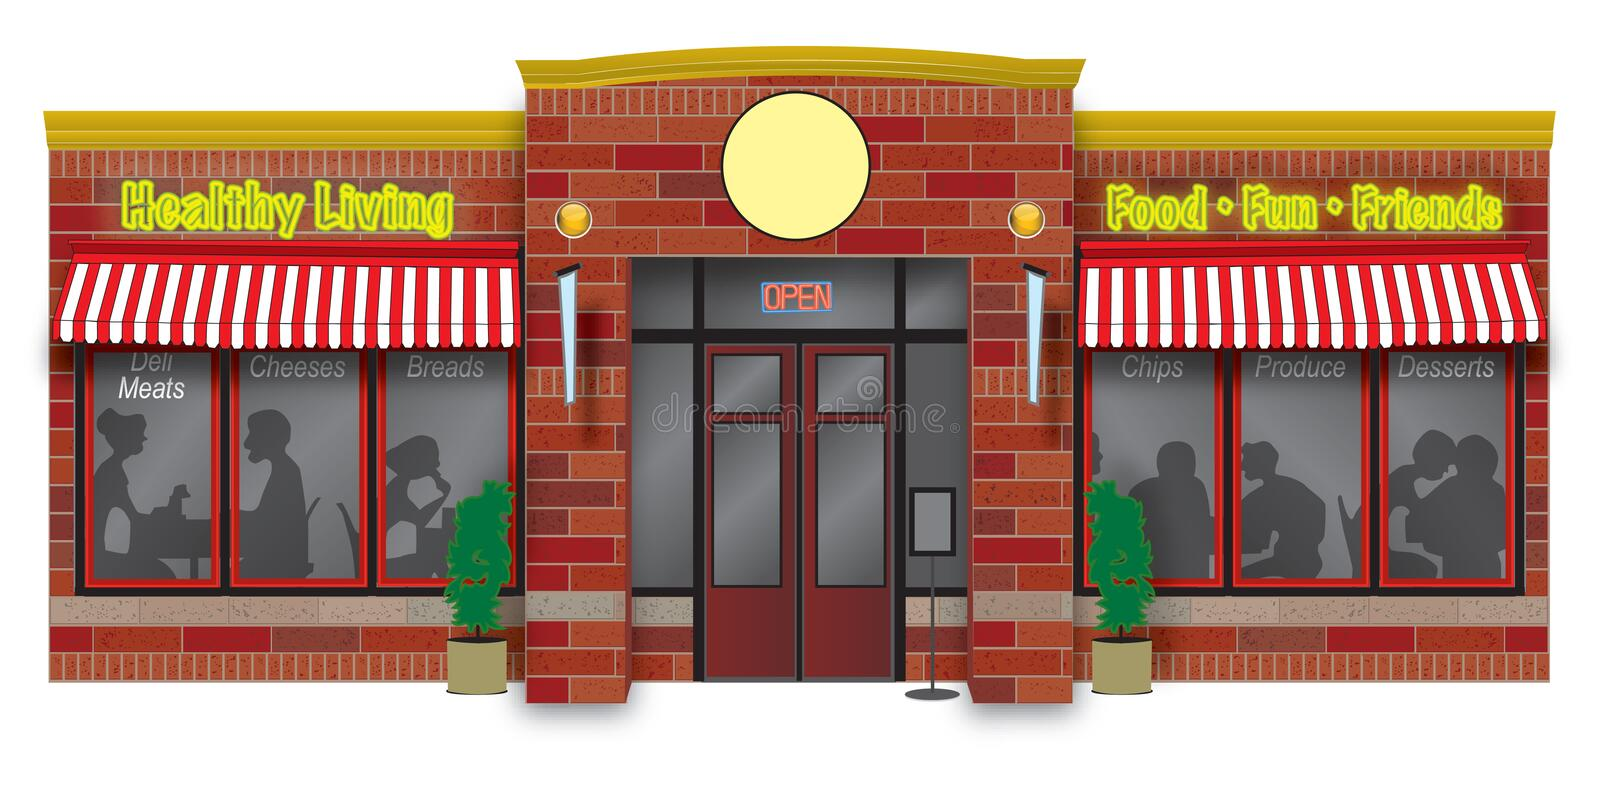 De illustratie van de delicatessenwinkel storefront stock illustratie